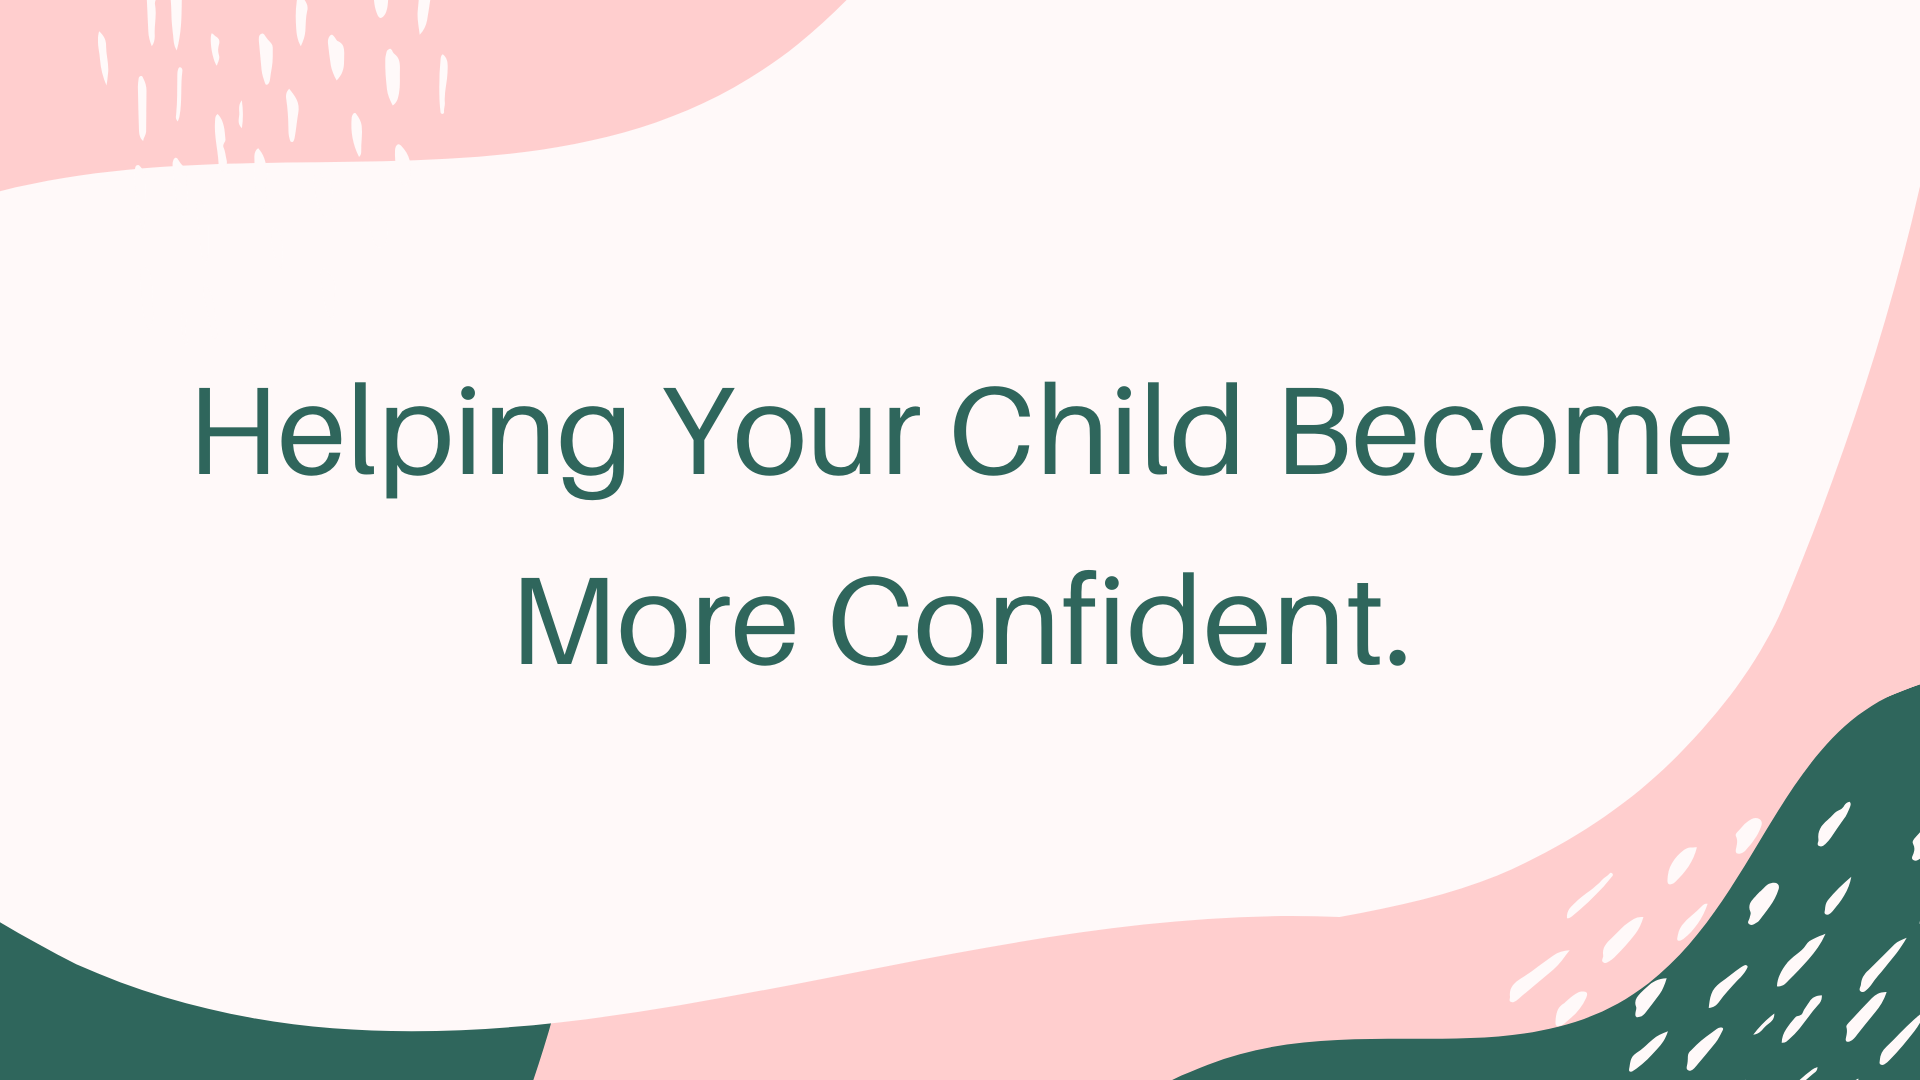 Child become more confident